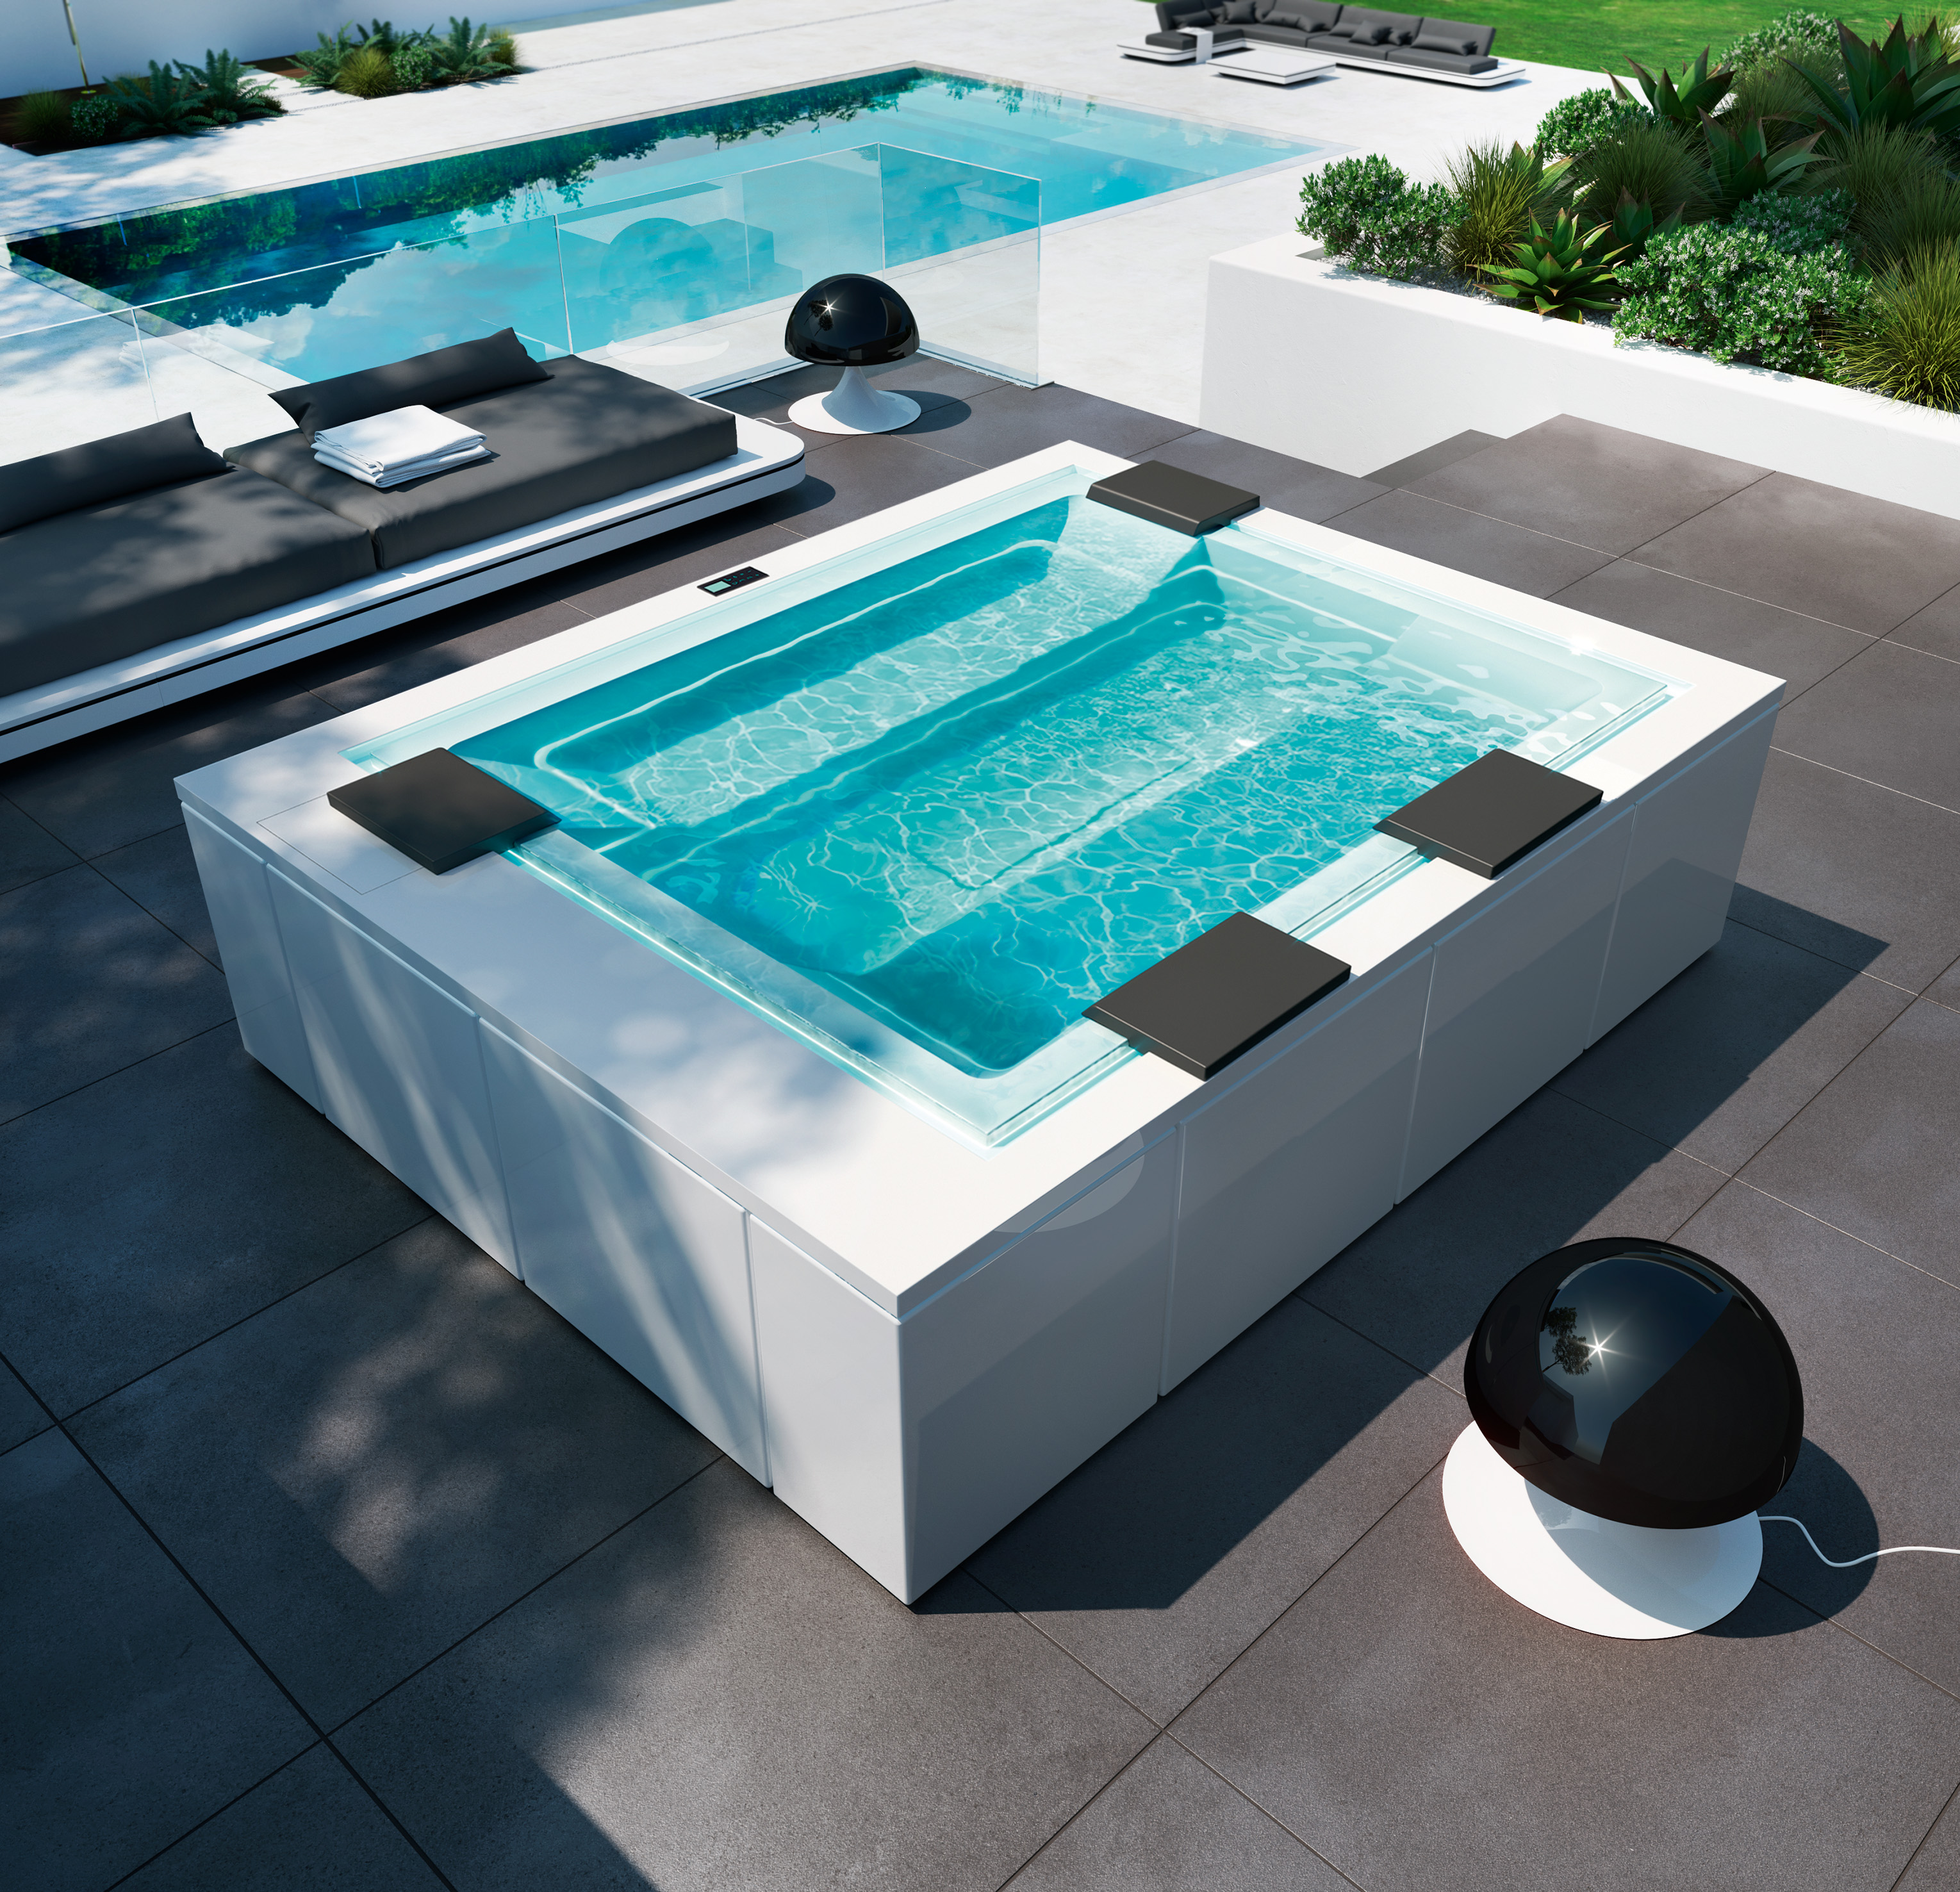 Aquatica-zen-spa-pro-by-marc-sadler